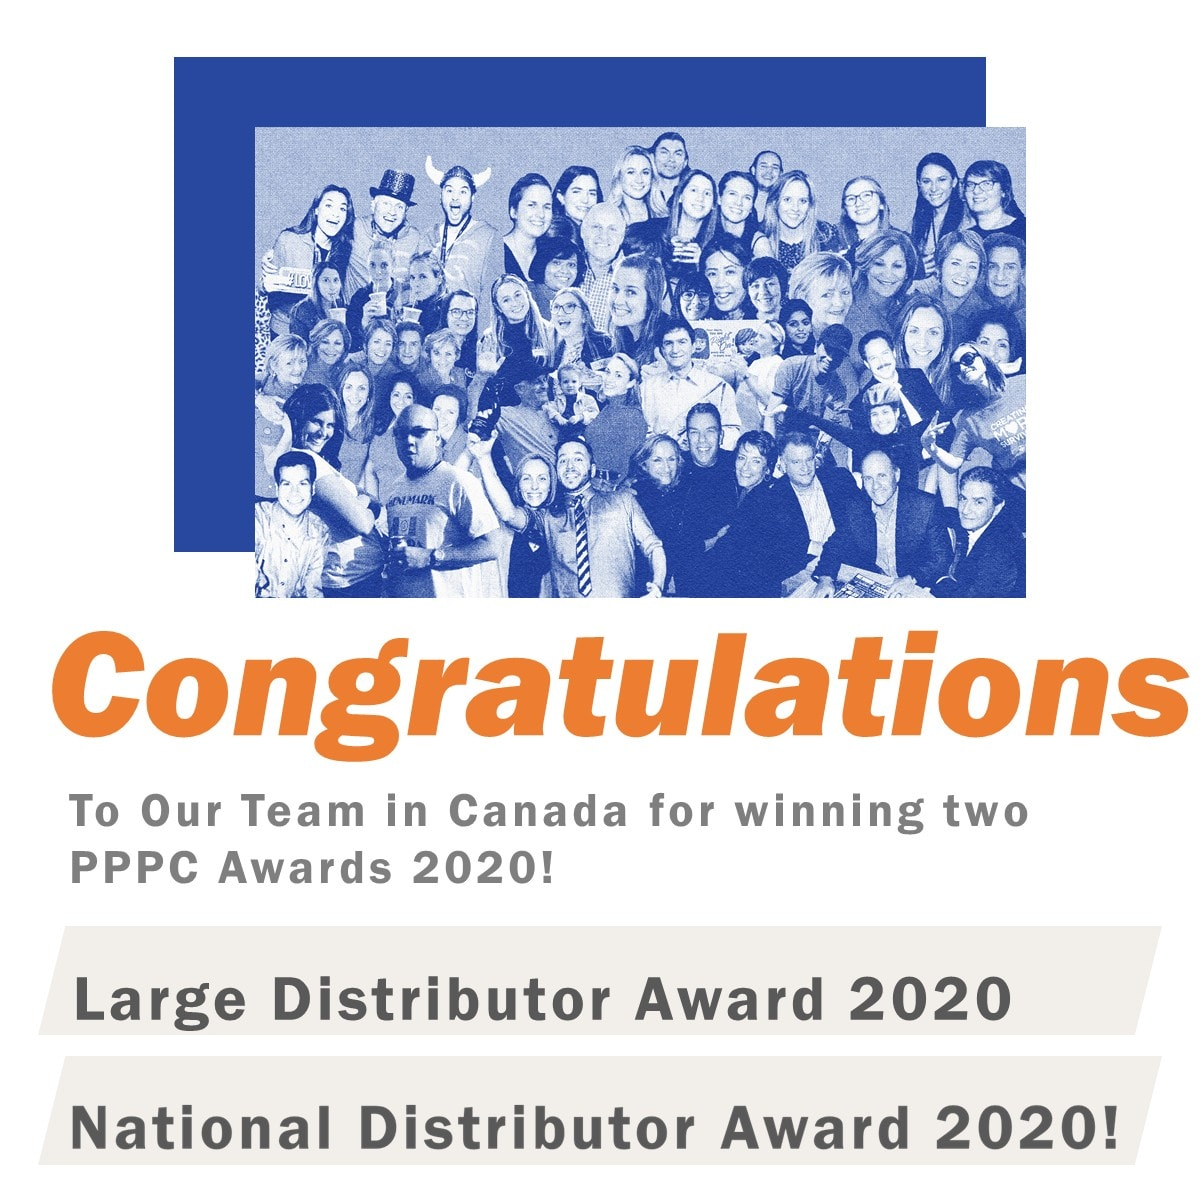 Prominate Canada: 2 time PPPC awards winners